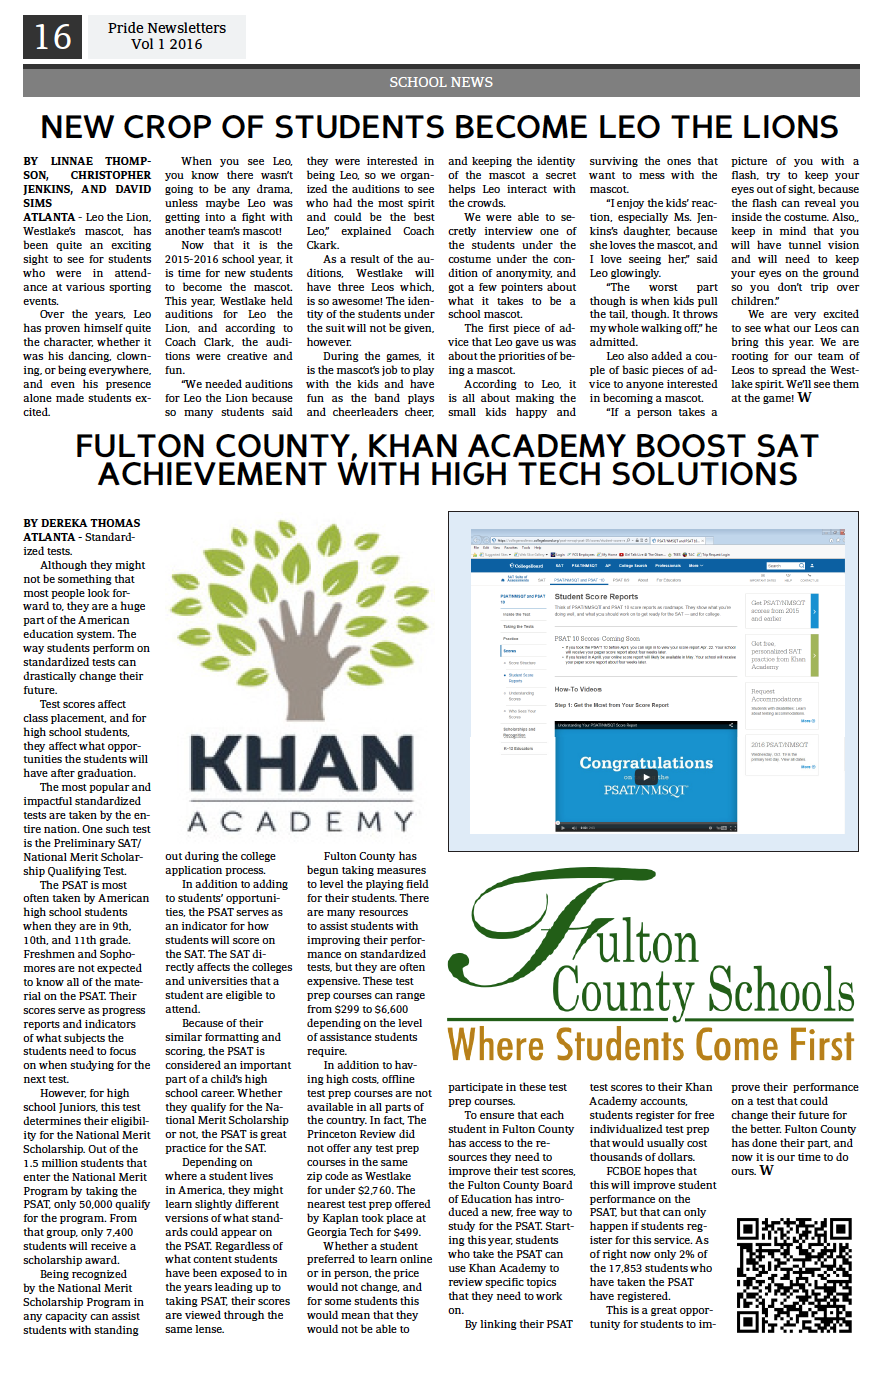 Newspaper Preview 016.png